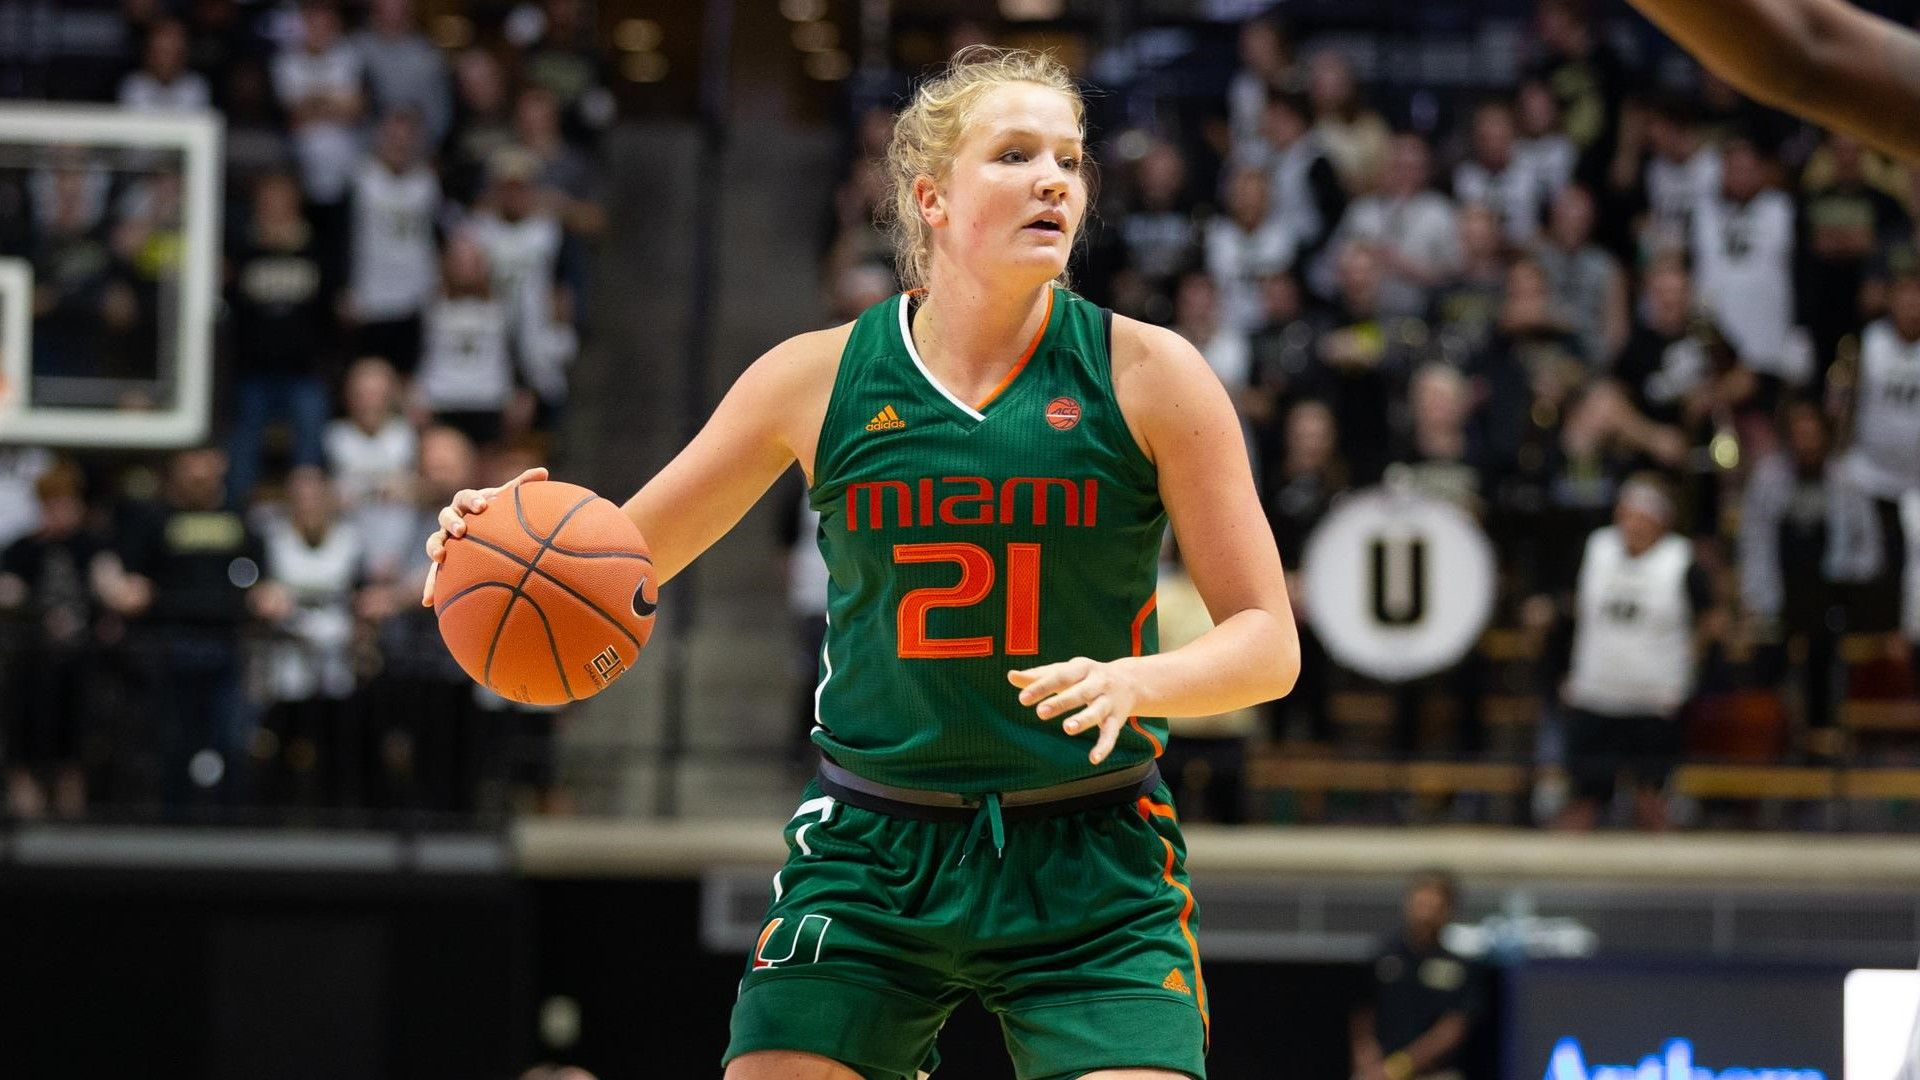 WBB Falls at Purdue, 74-63, in ACC/B1G Challenge